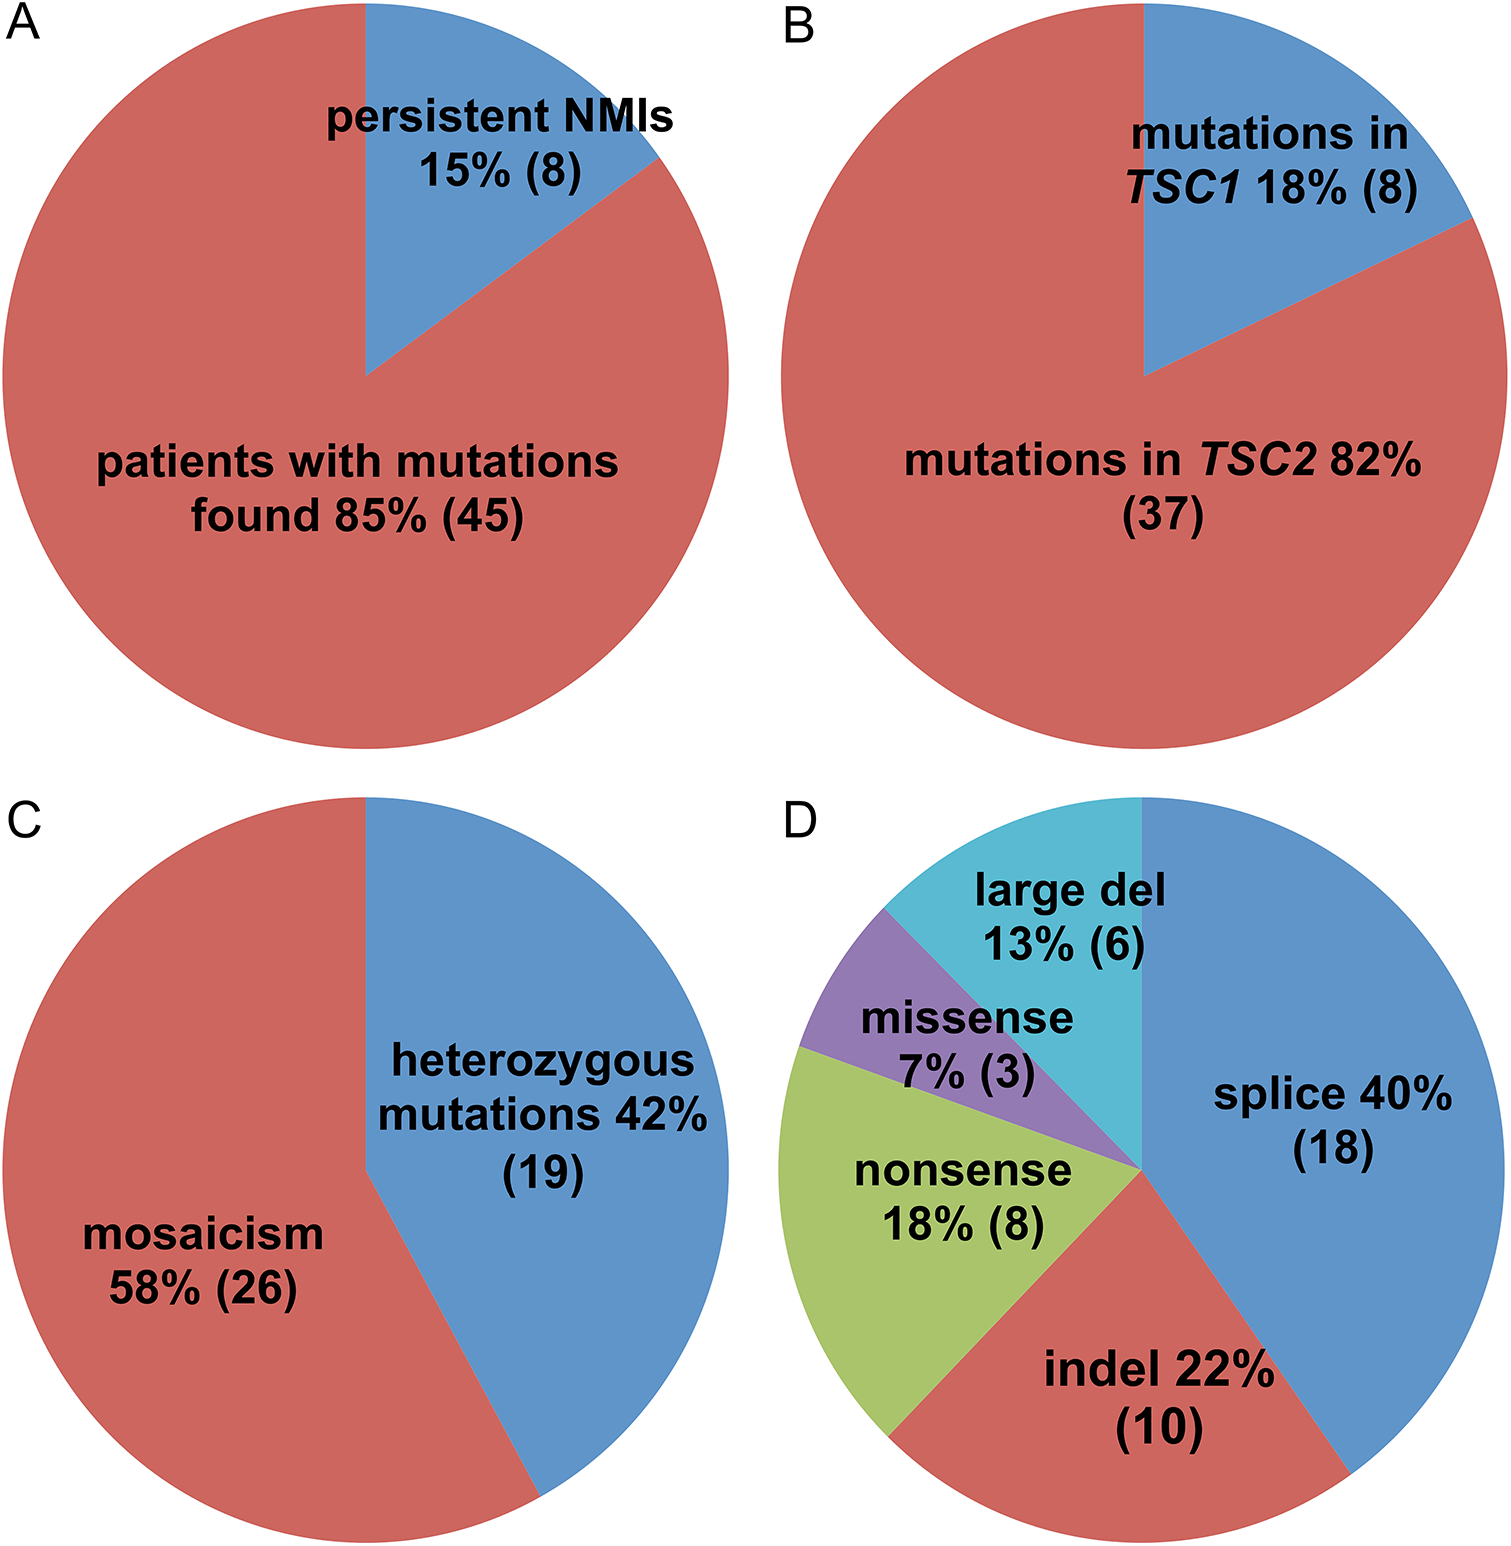 Pie charts displaying the mutation types and frequencies in 53 TSC NMI subjects.